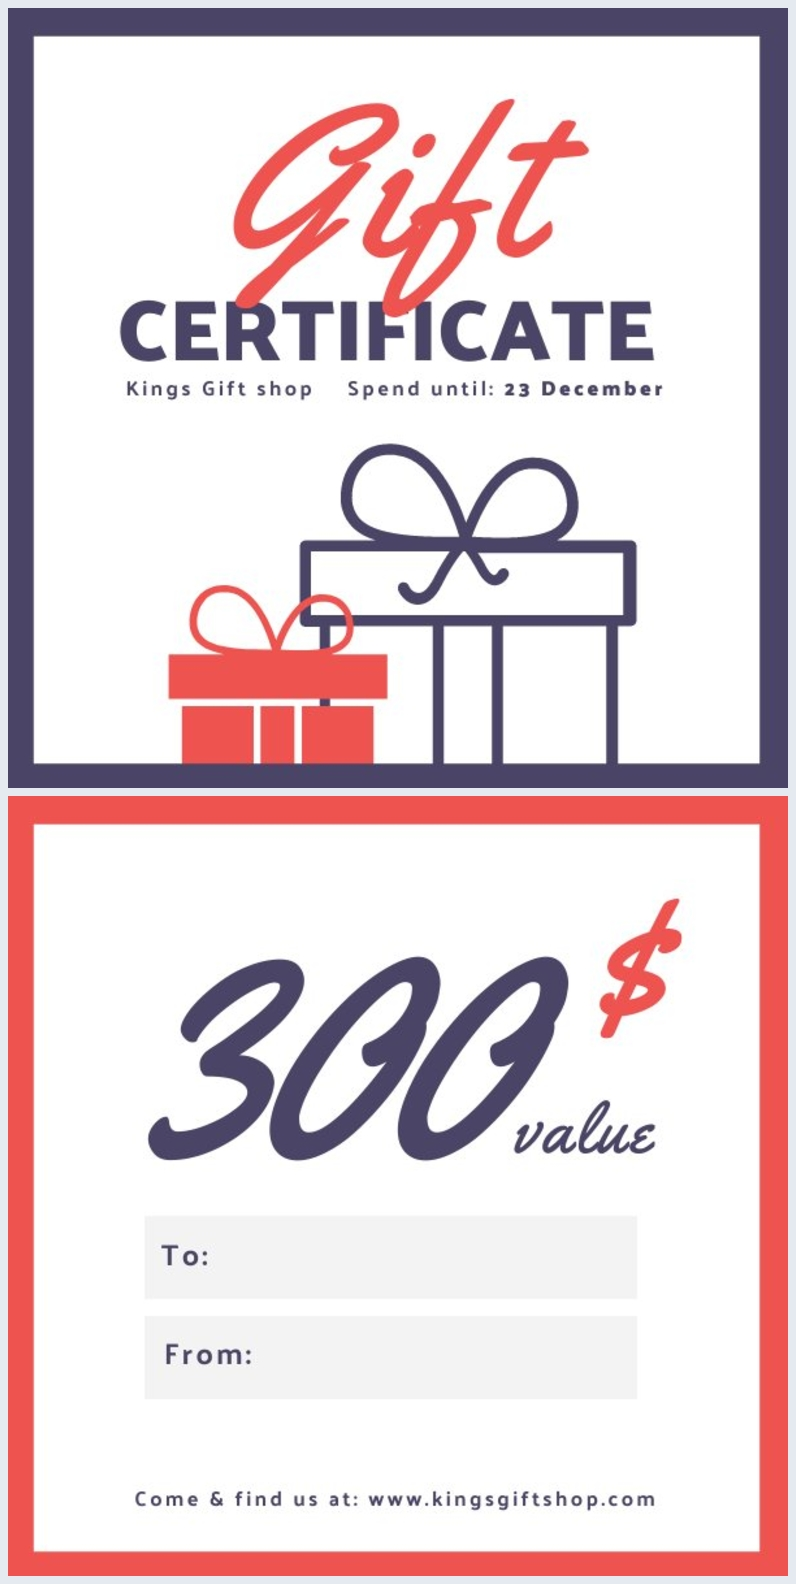 Christmas Gift Certificate Design